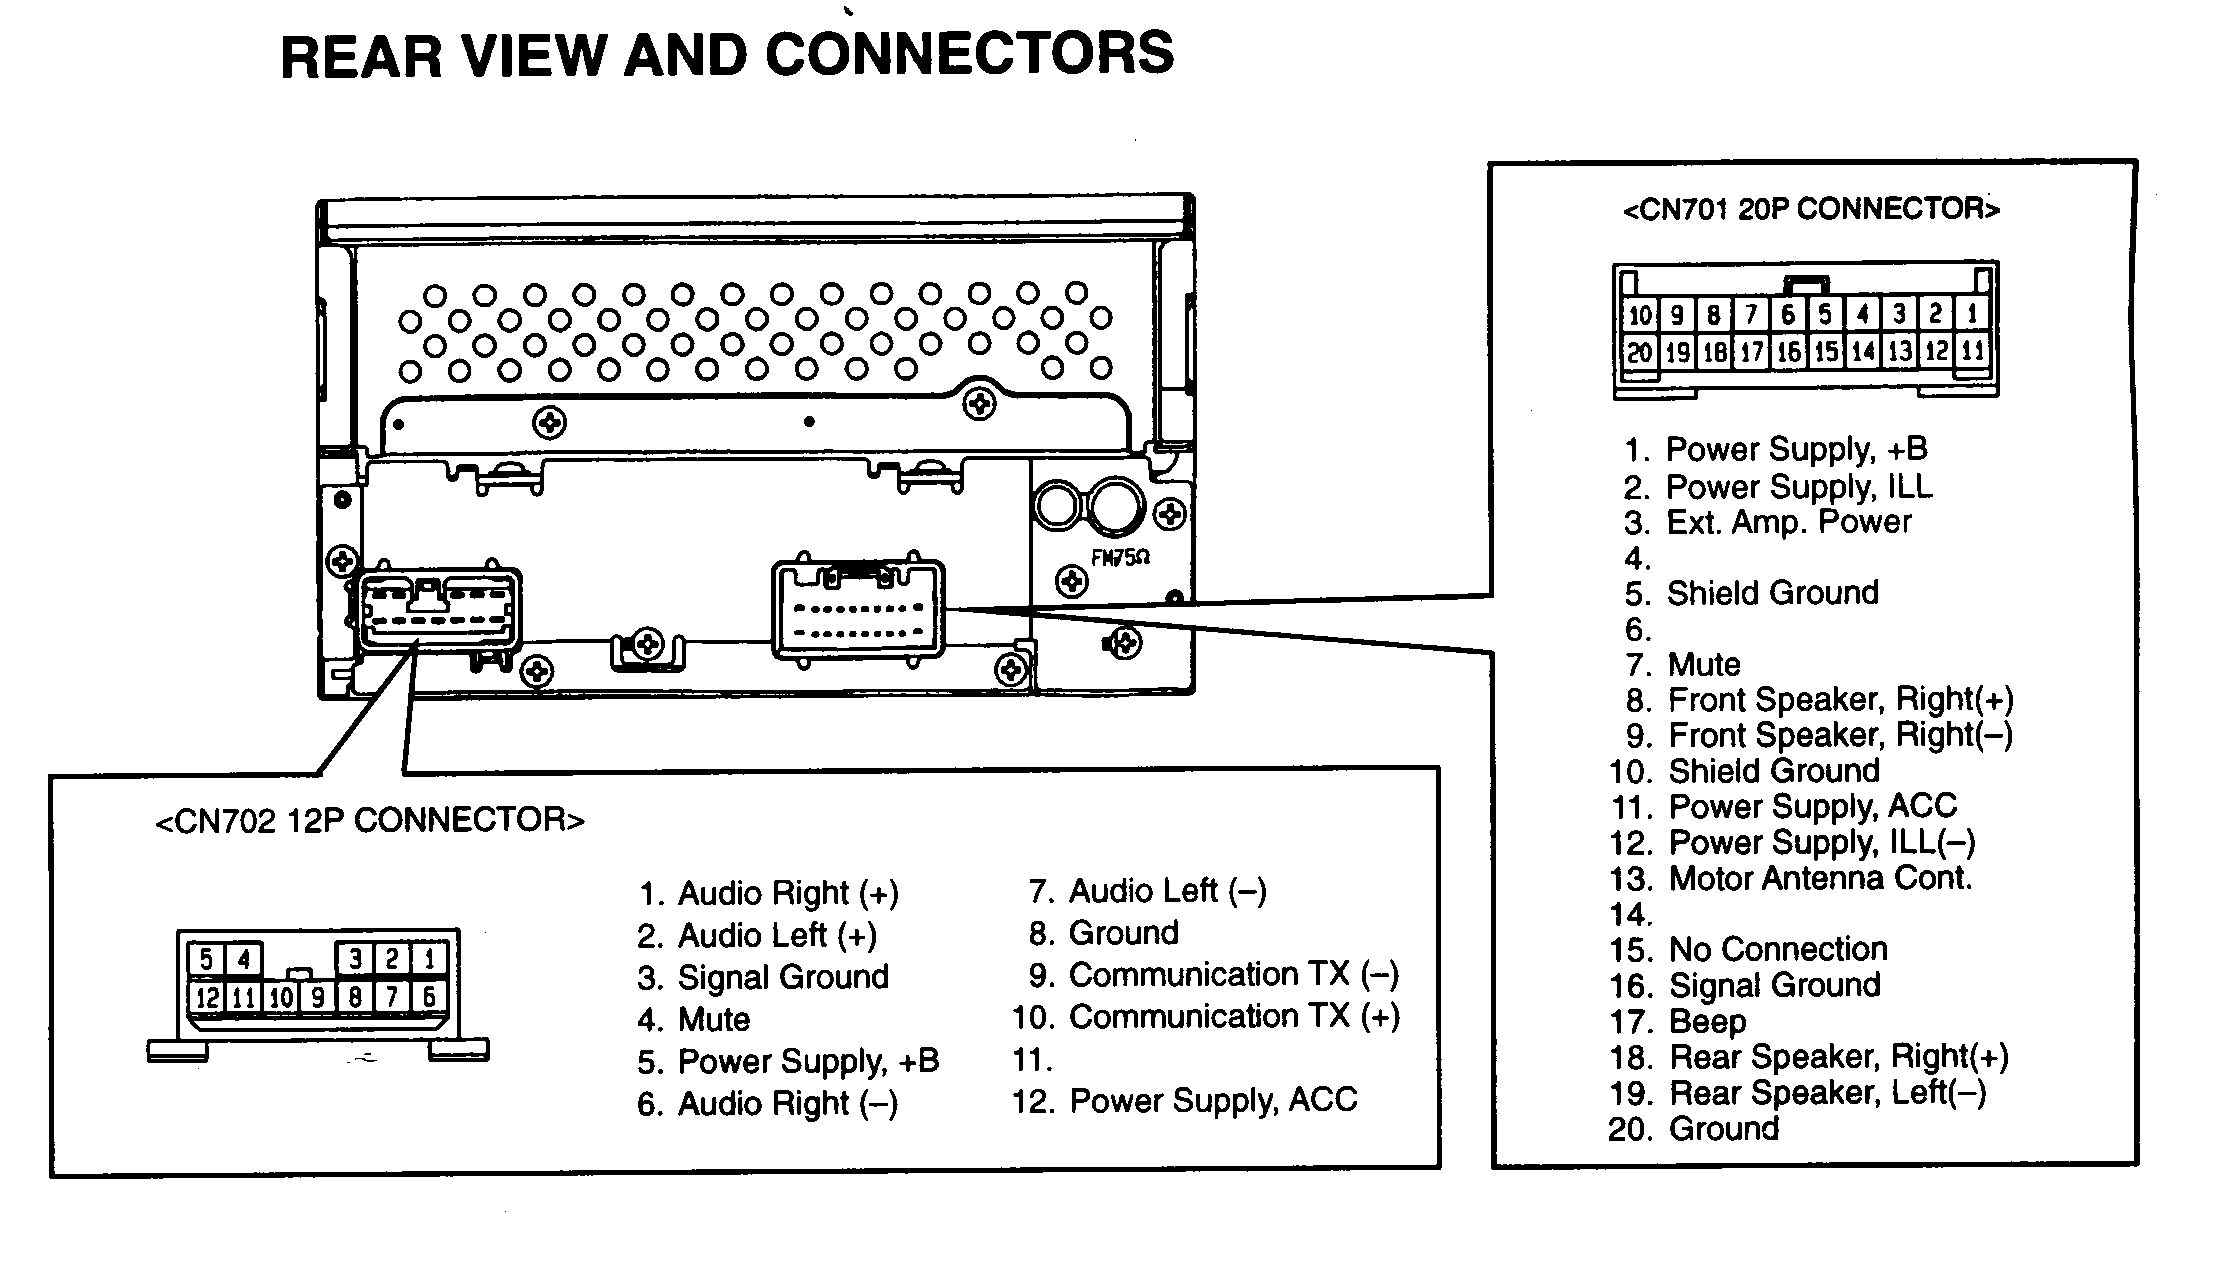 wiring diagram car audio speakers honeywell r8285d stereo help wire color code diagrams and factory repair bose all are not